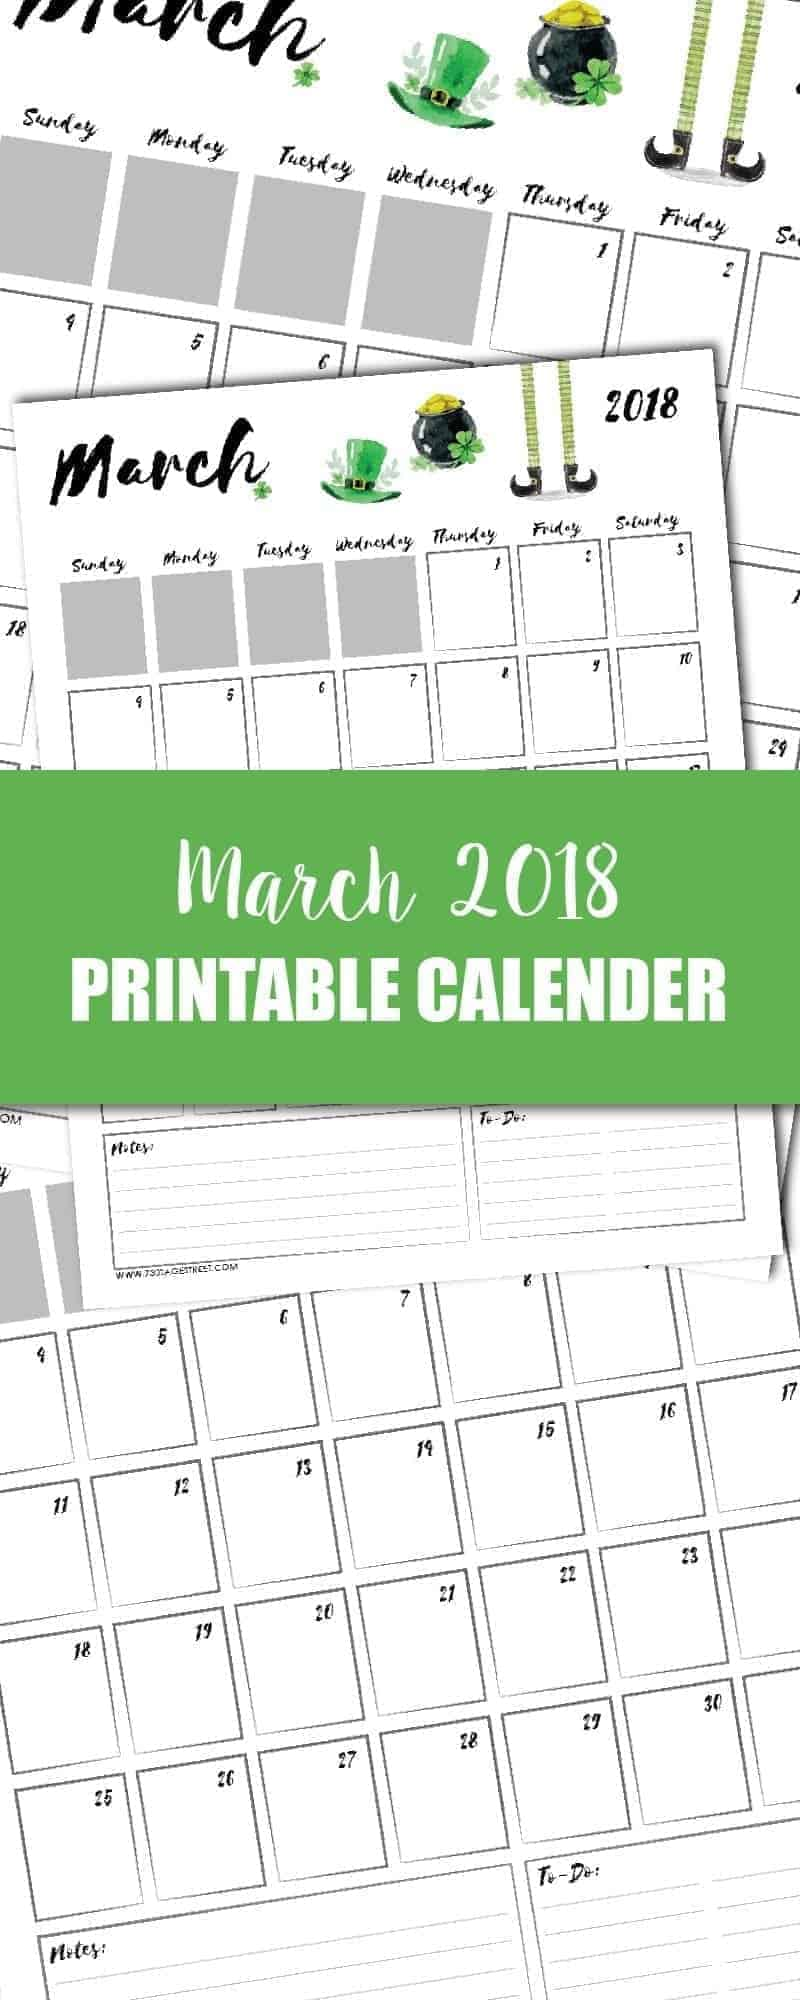 tall graphic showing a March 2018 printable calendar